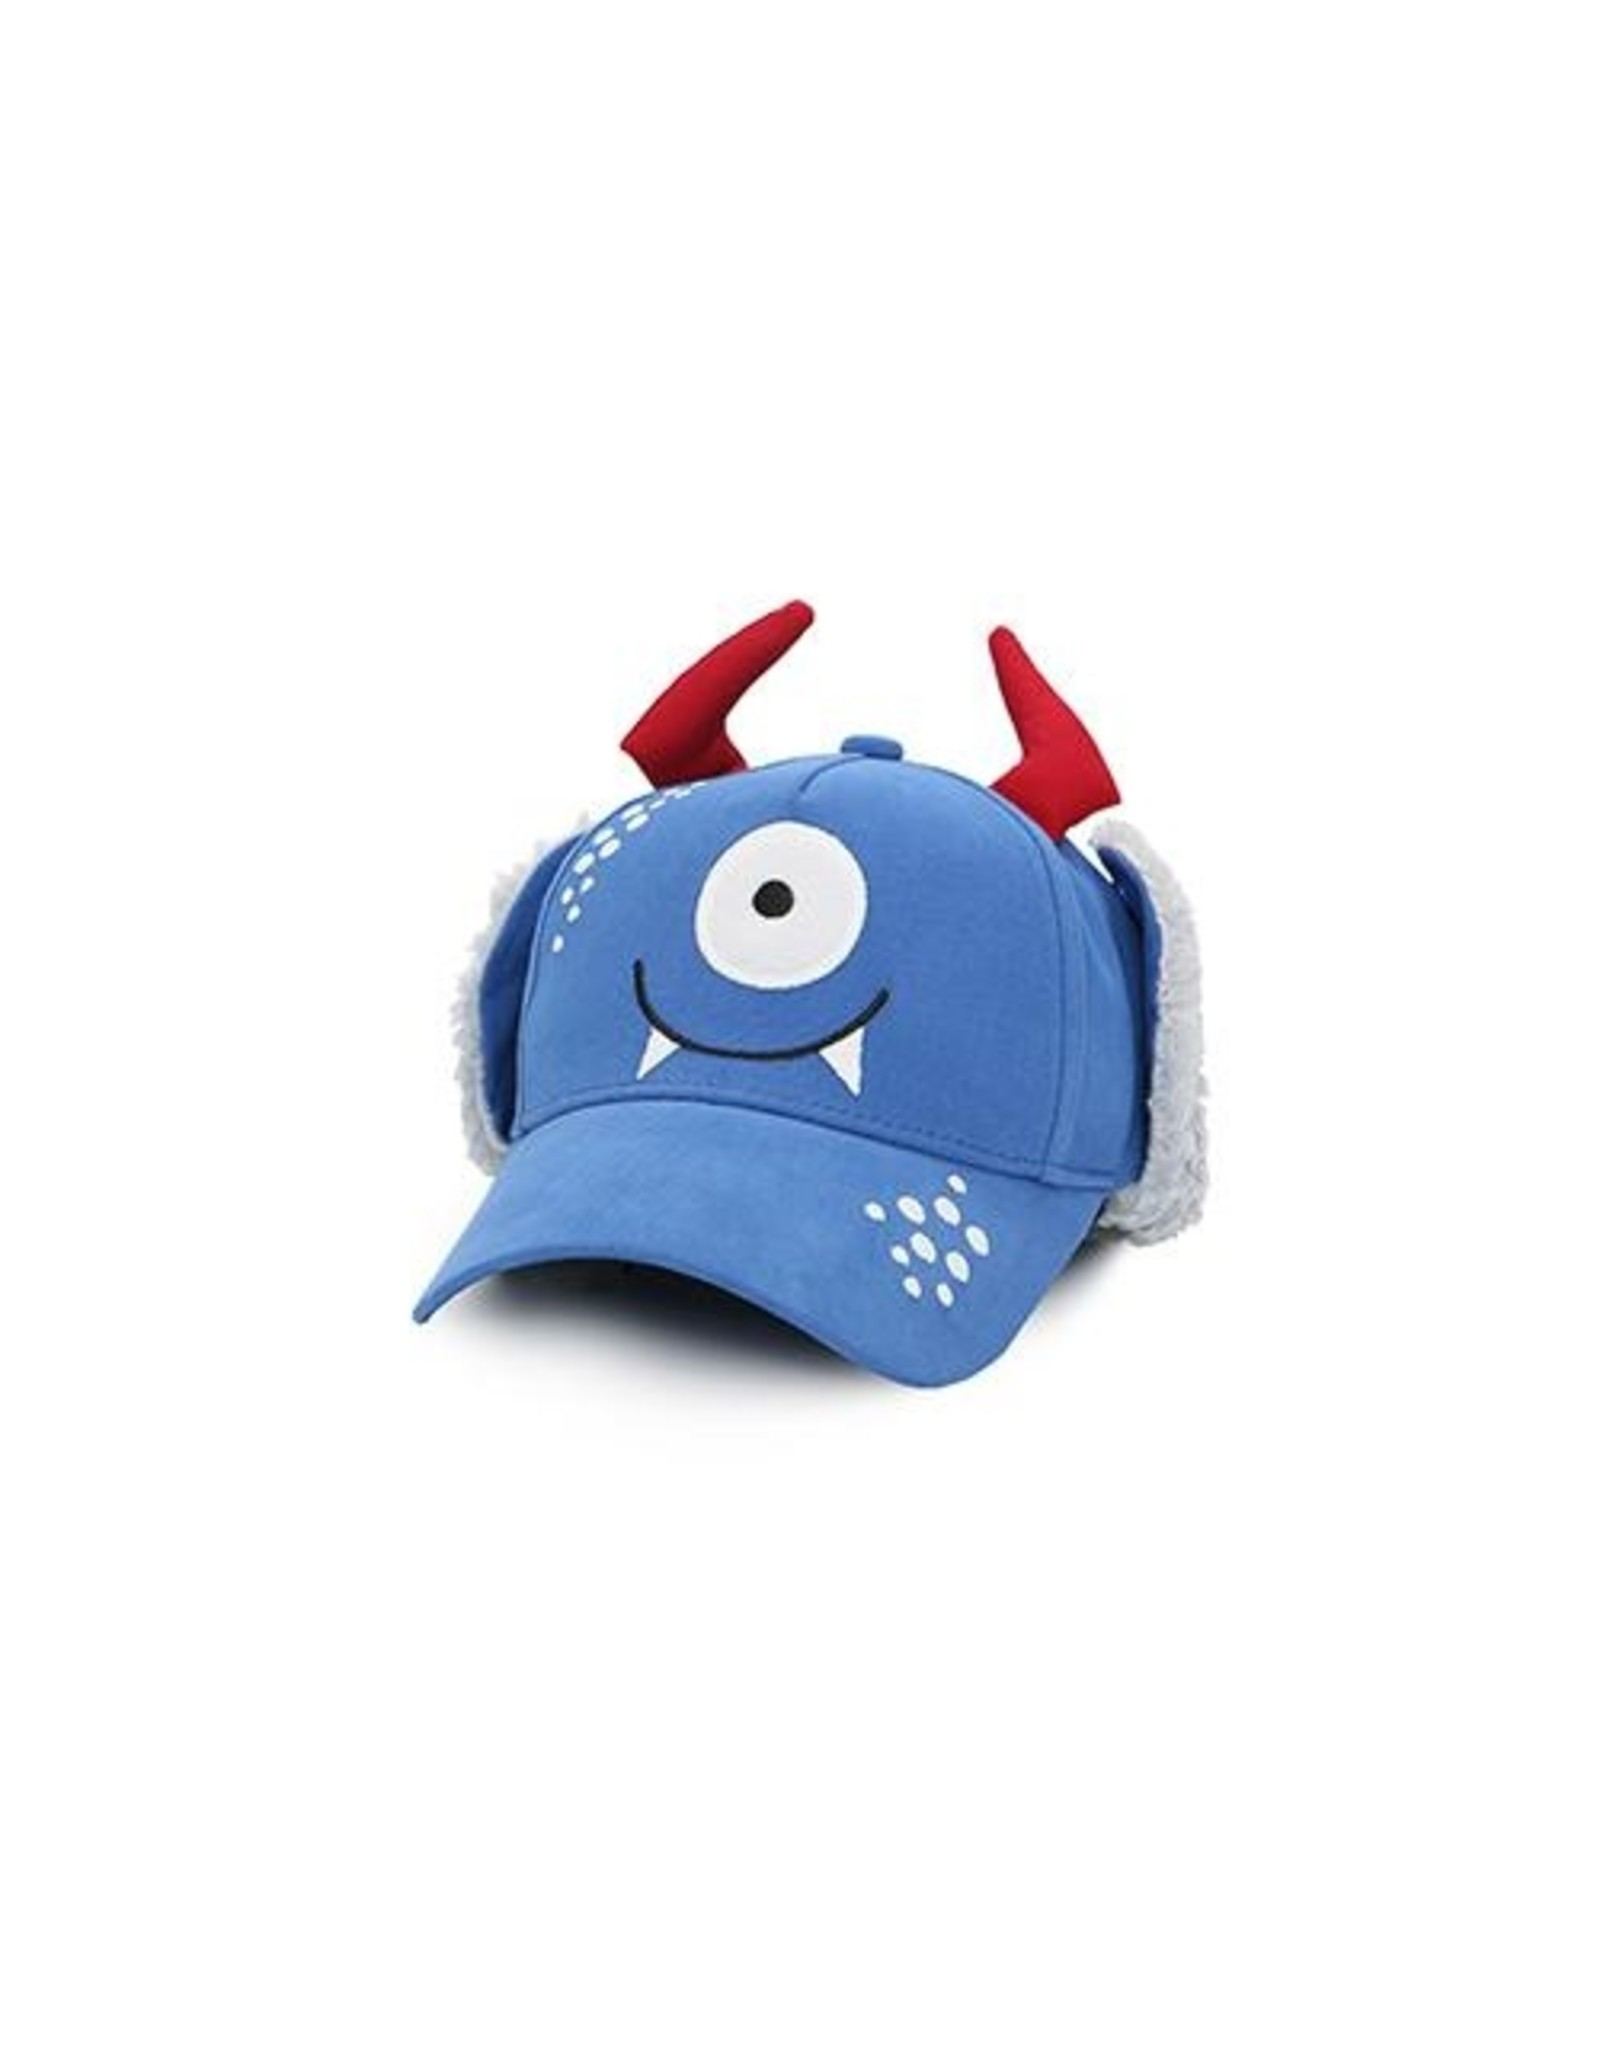 FLAPJACK 3D CAP WITH EAR FLAPS